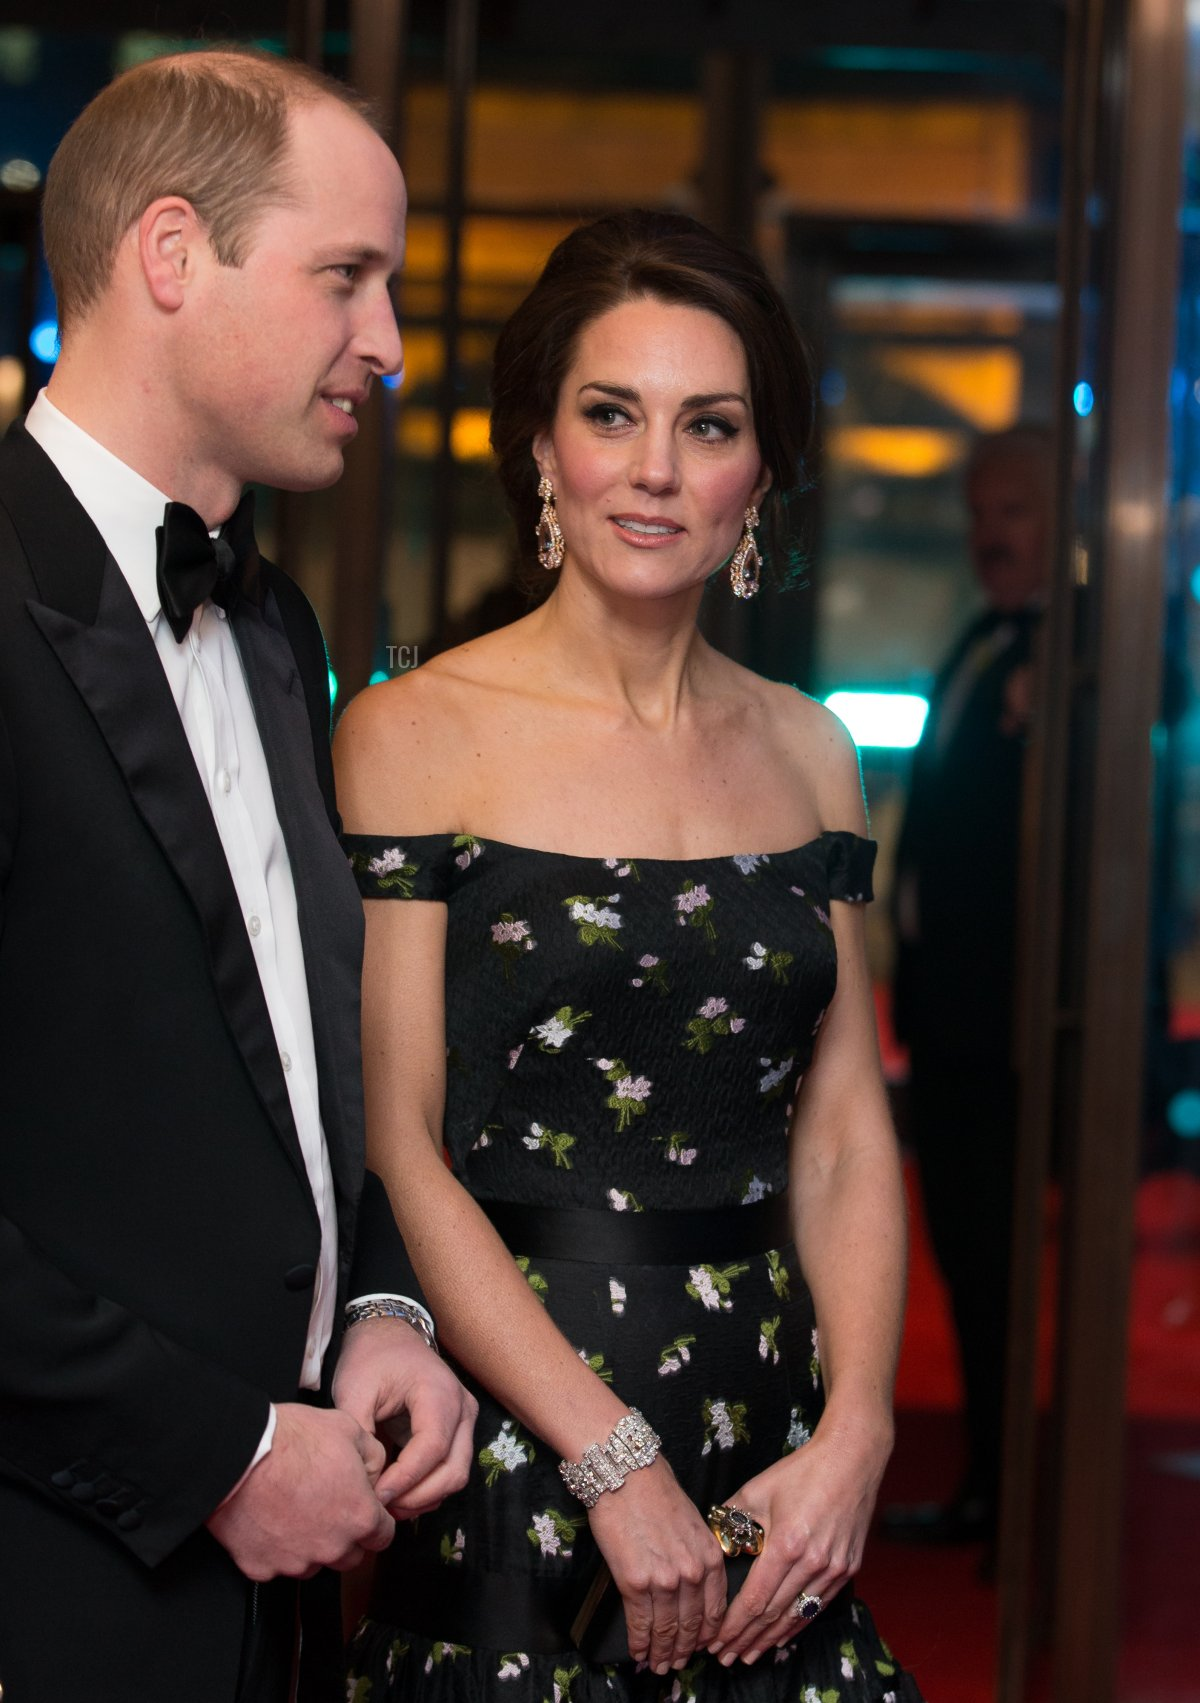 LONDON, ENGLAND - FEBRUARY 12: Catherine, Duchess of Cambridge and Prince William, Duke of Cambridge attend the 70th EE British Academy Film Awards (BAFTA) at the Royal Albert Hall on February 12, 2017 in London, England